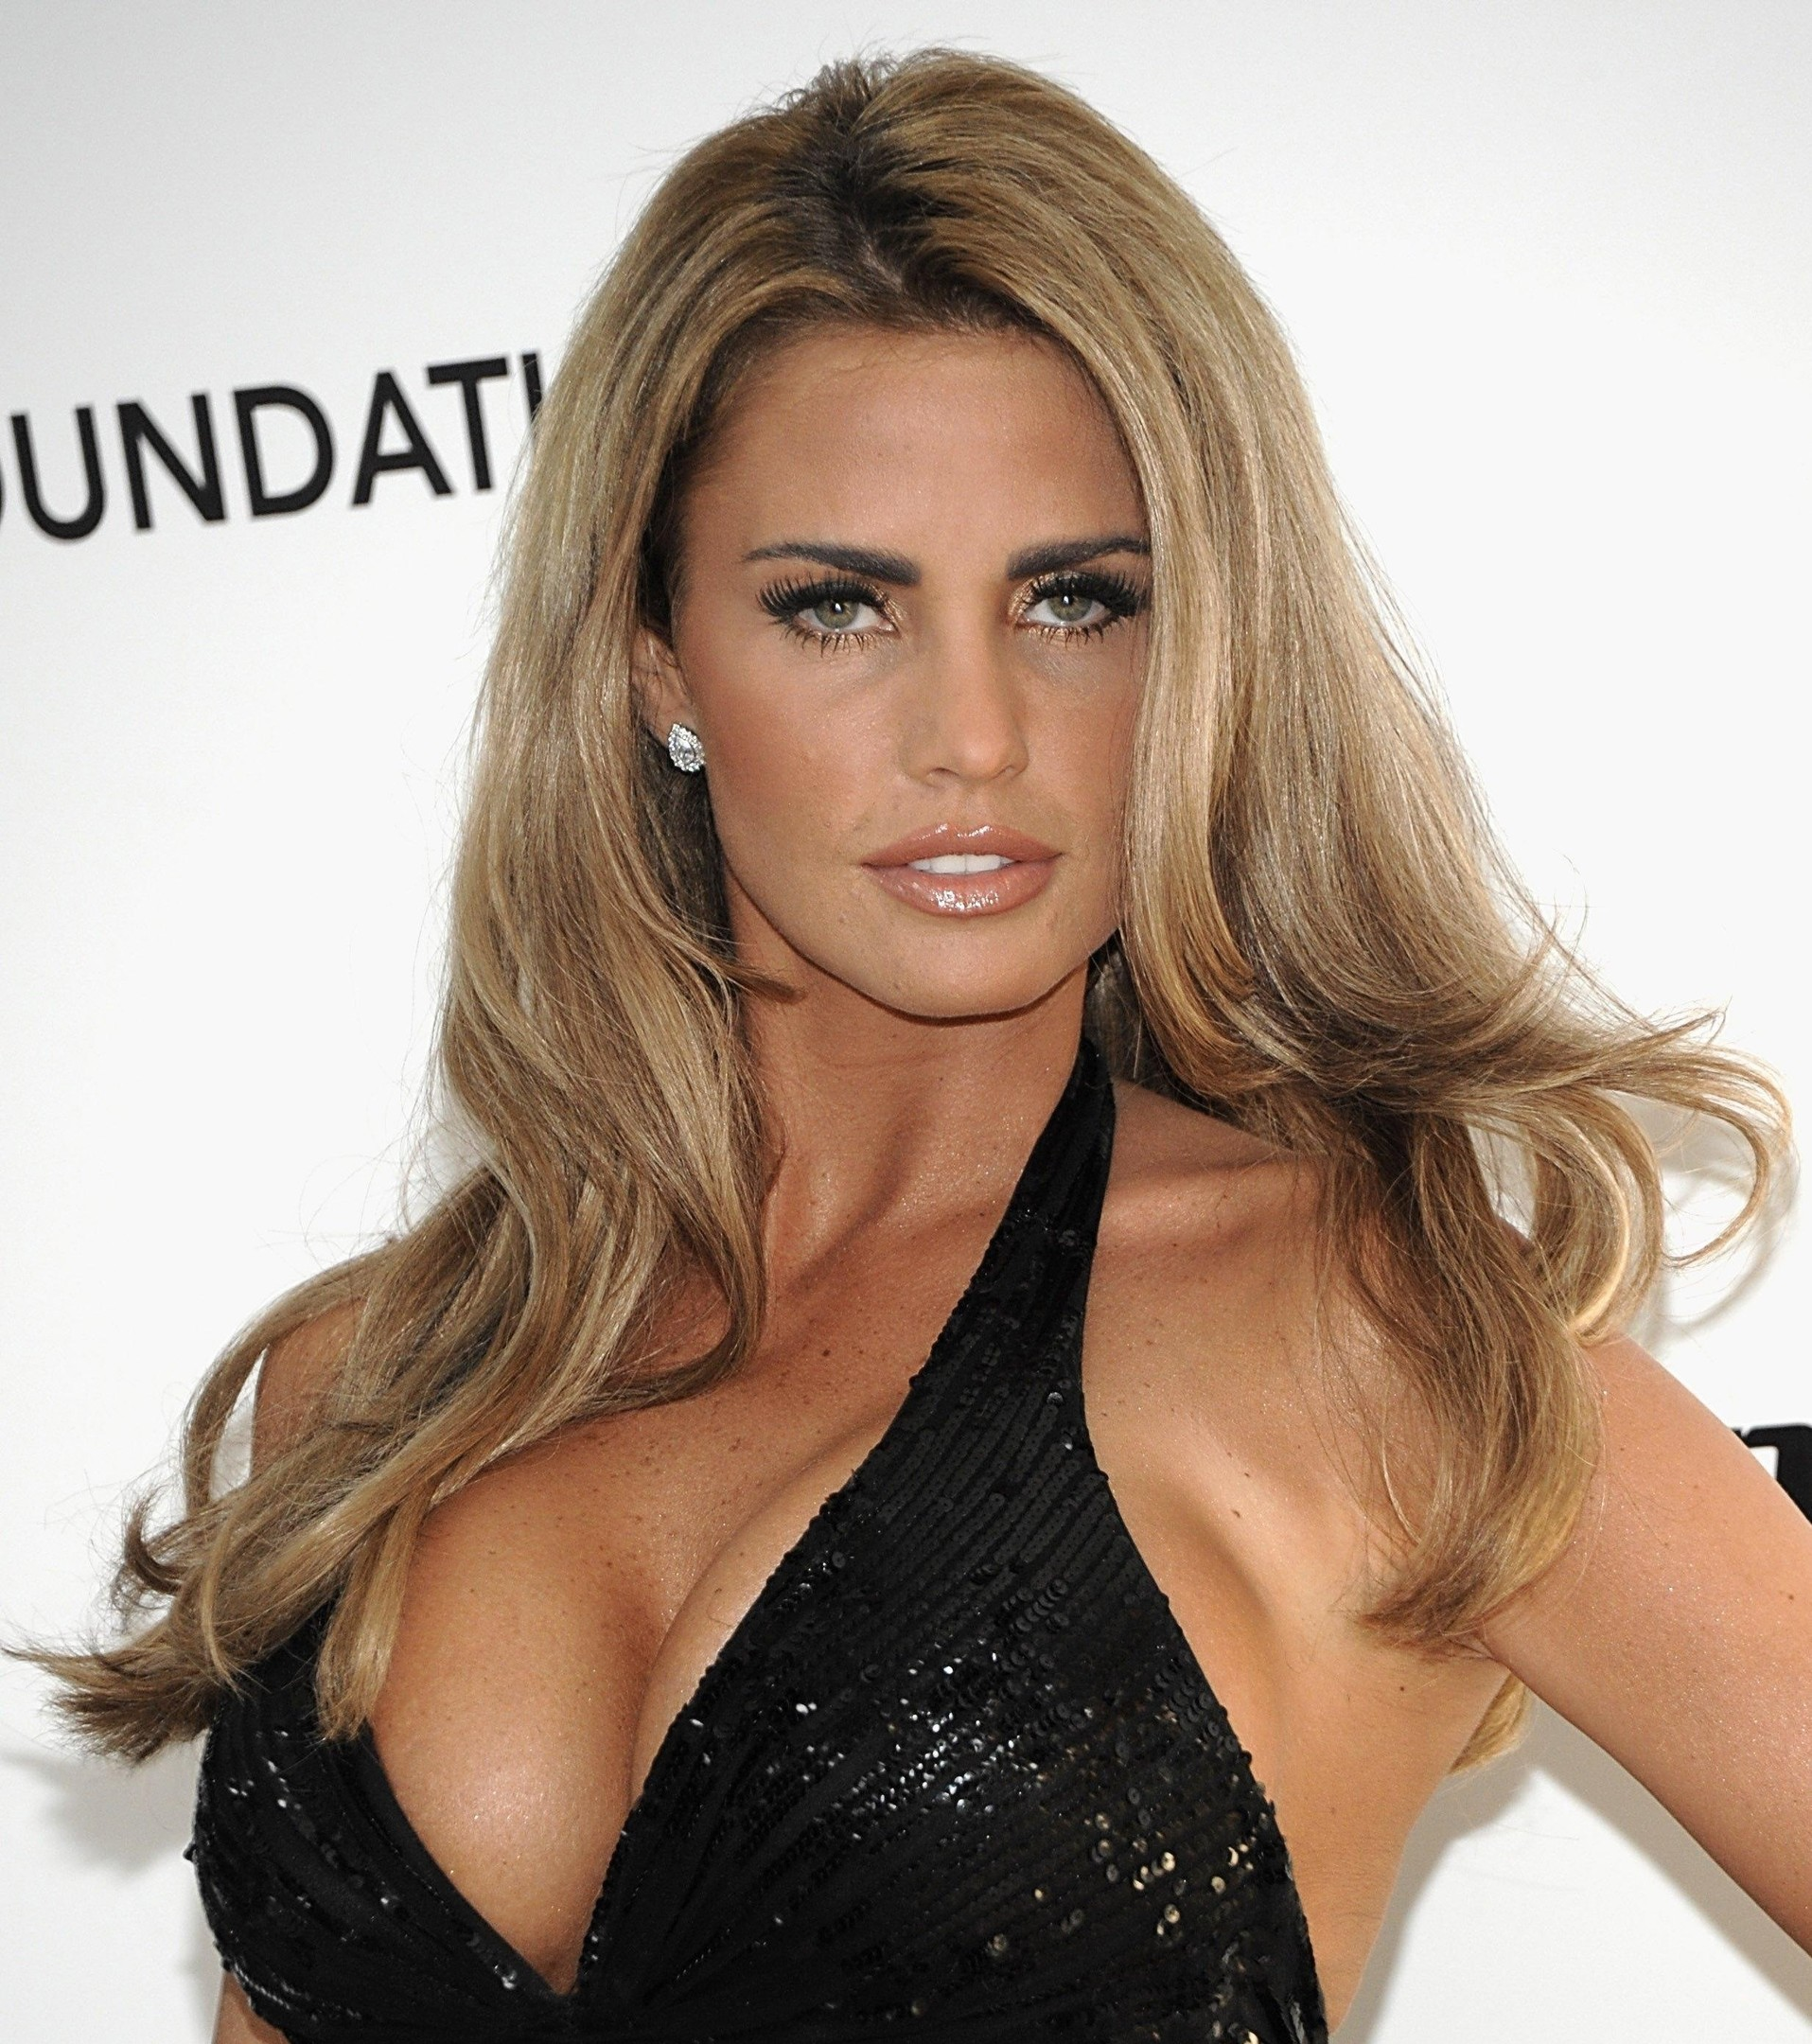 pictures Katie Price